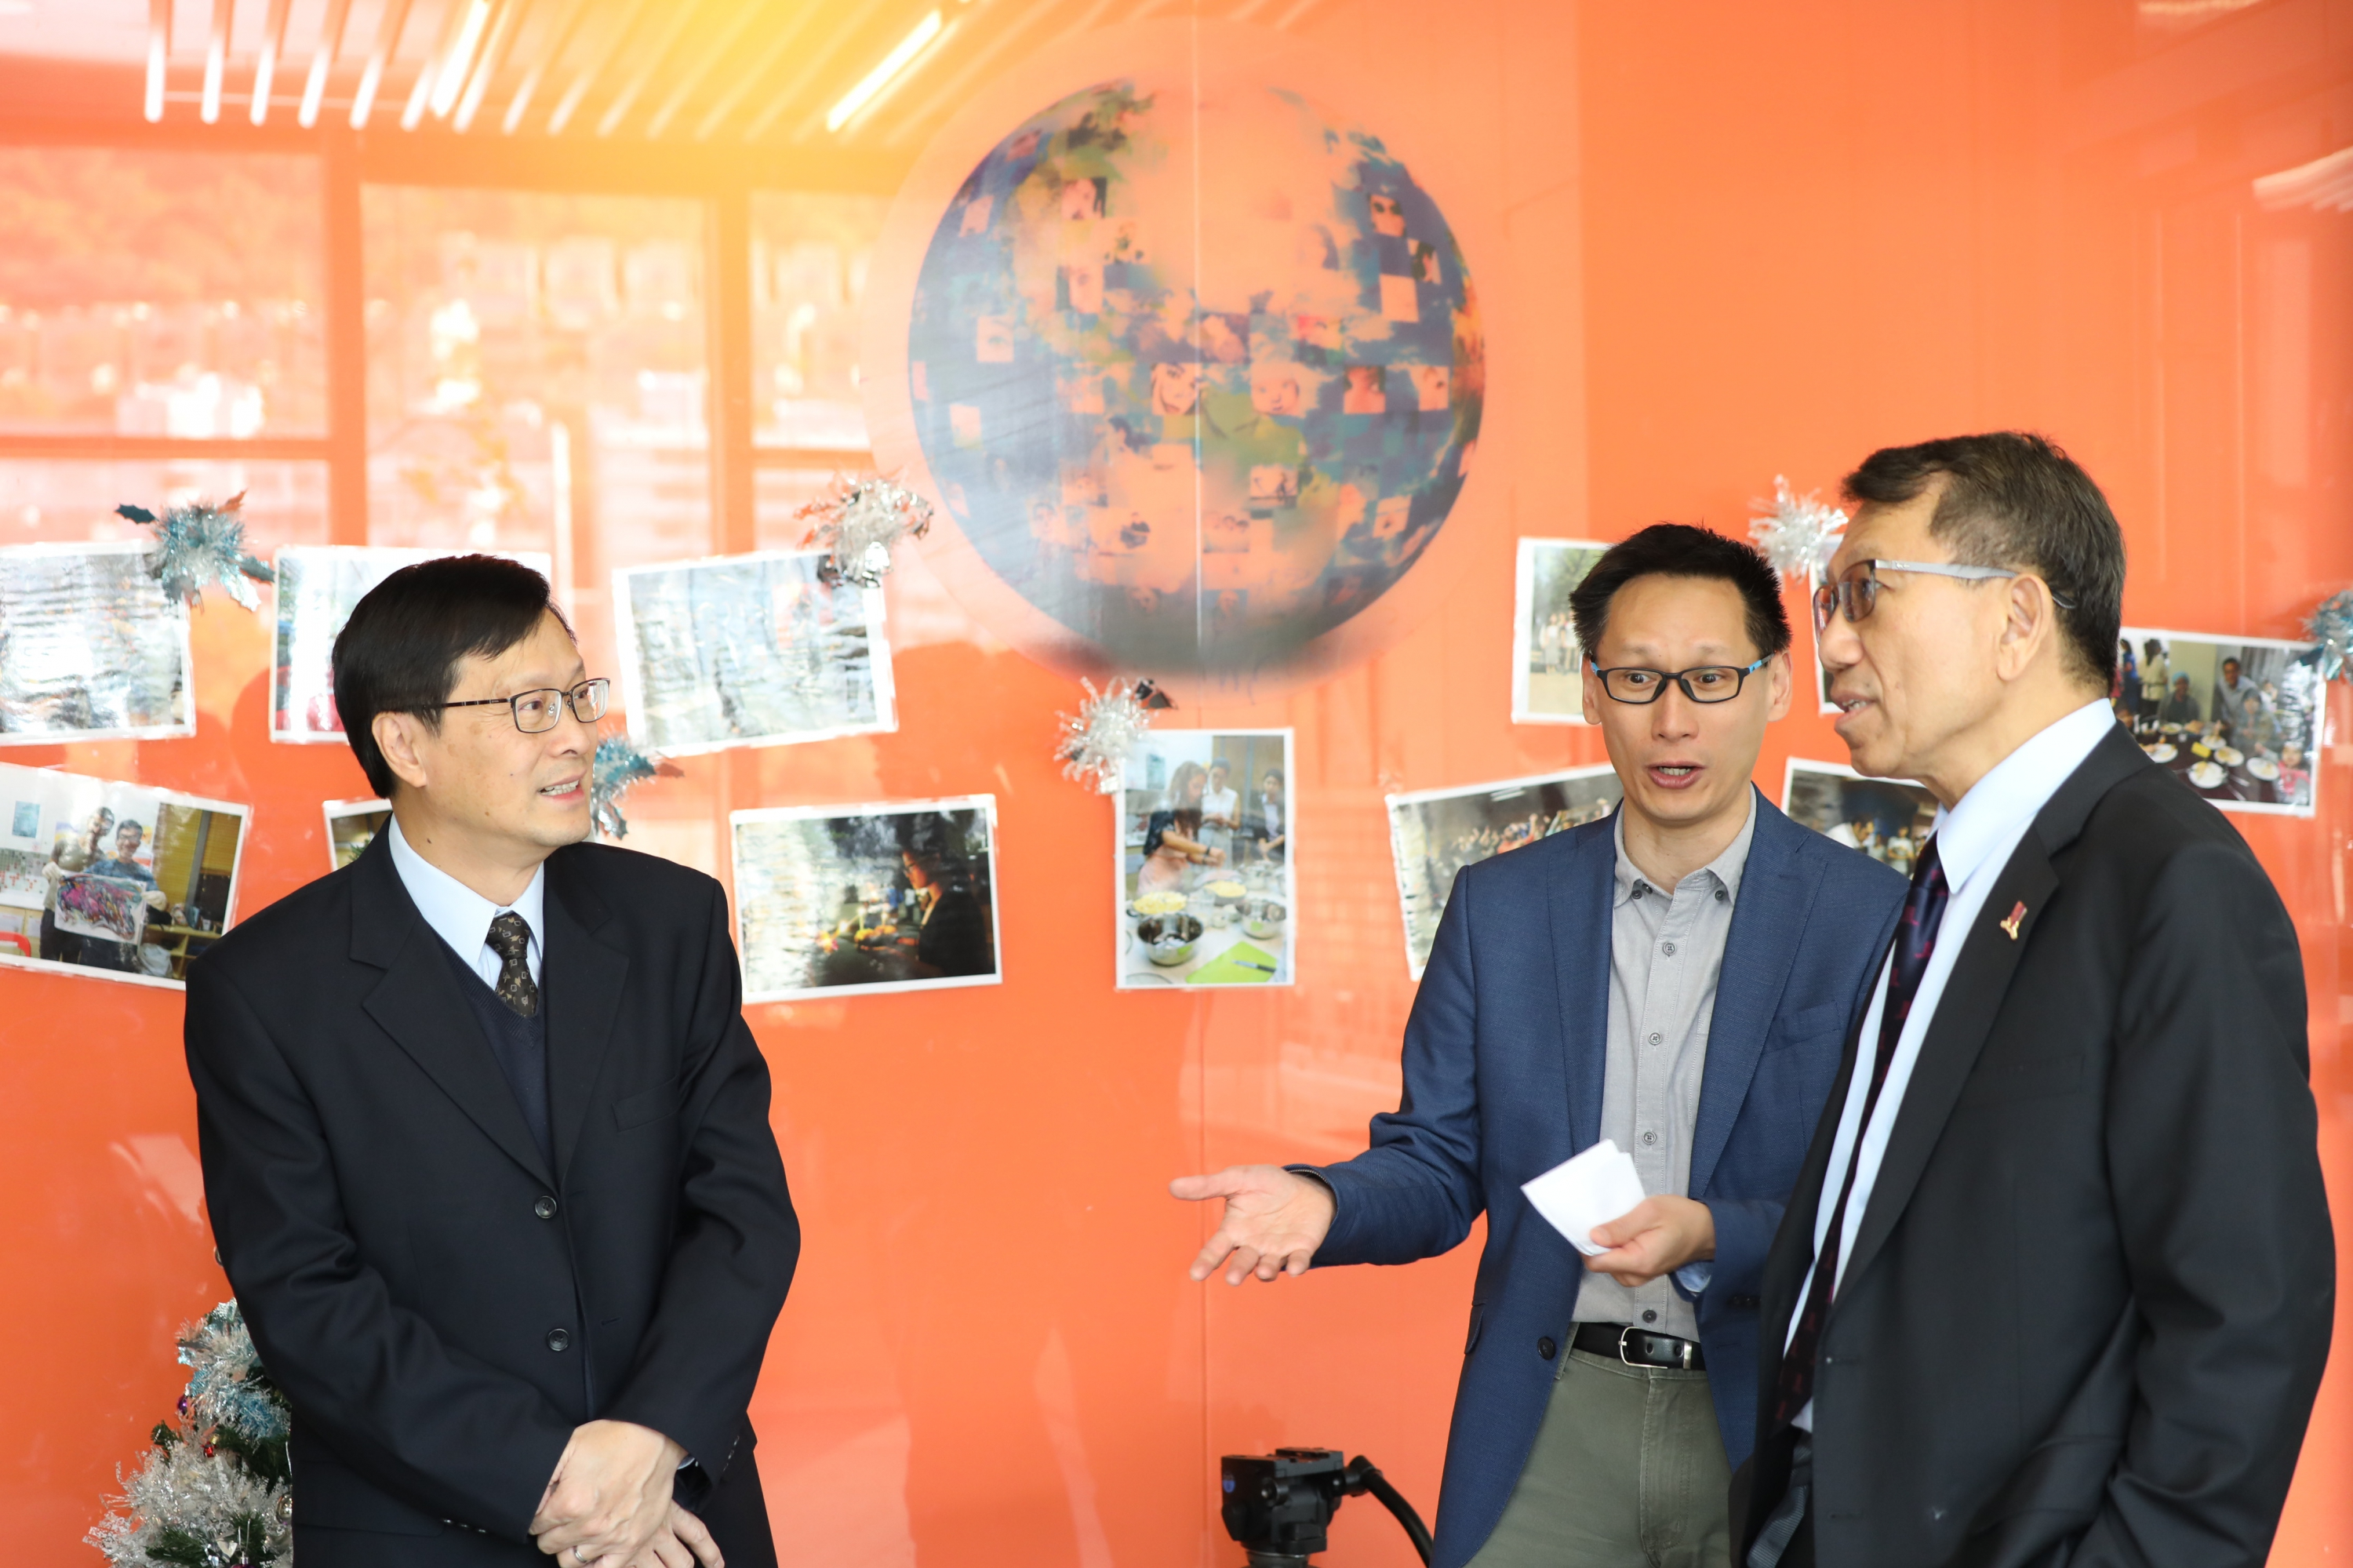 (from left) Mr. Raymond Leung, Director of Office of Student Affairs of CUHK, Professor Edwin Chan, Associate Vice-President / University Dean of Students accompany Professor Tuan to visit various facilities in CUHK